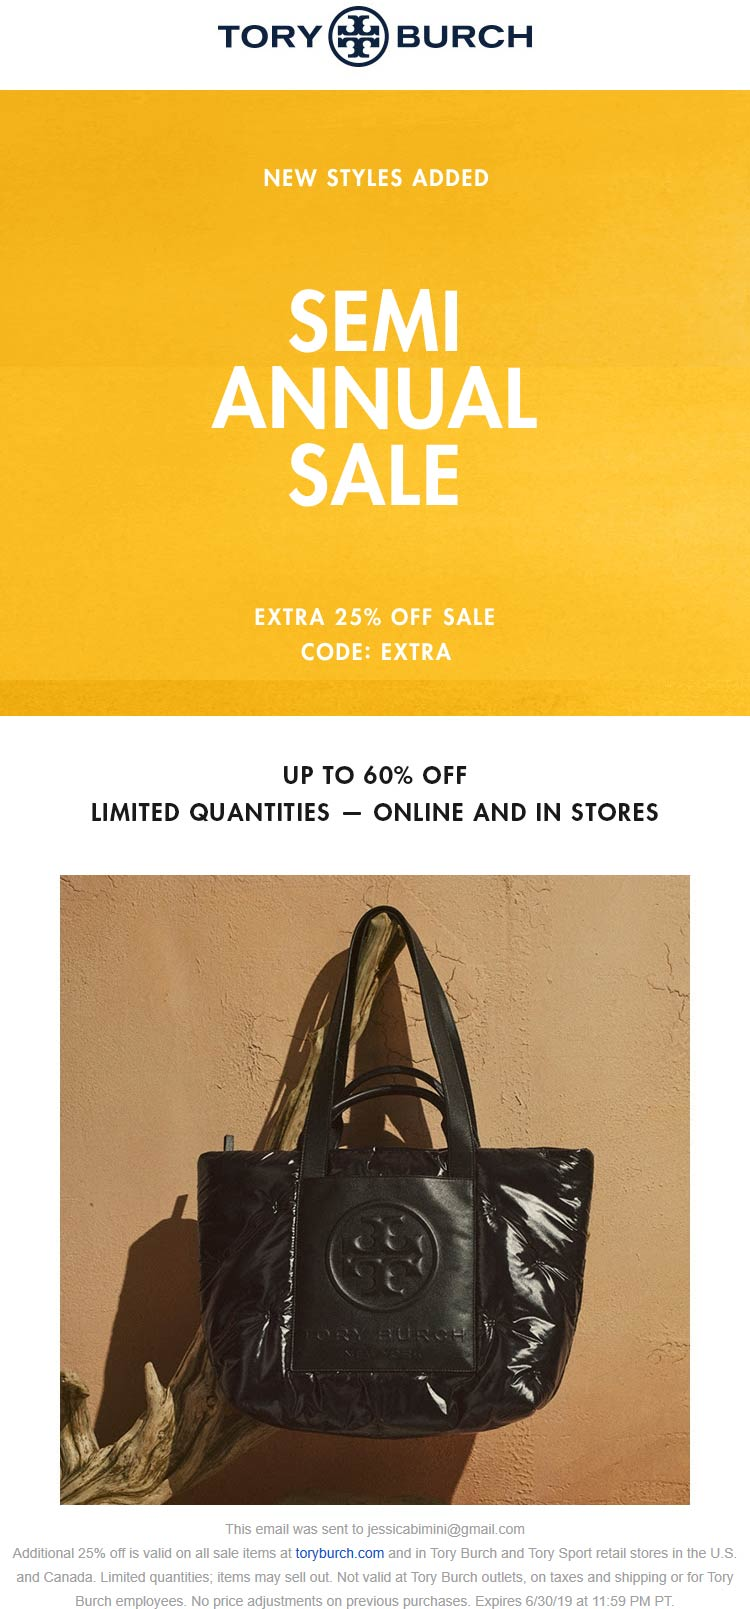 Tory Burch Coupon September 2019 Extra 25% off sale items at Tory Burch, or online via promo code EXTRA